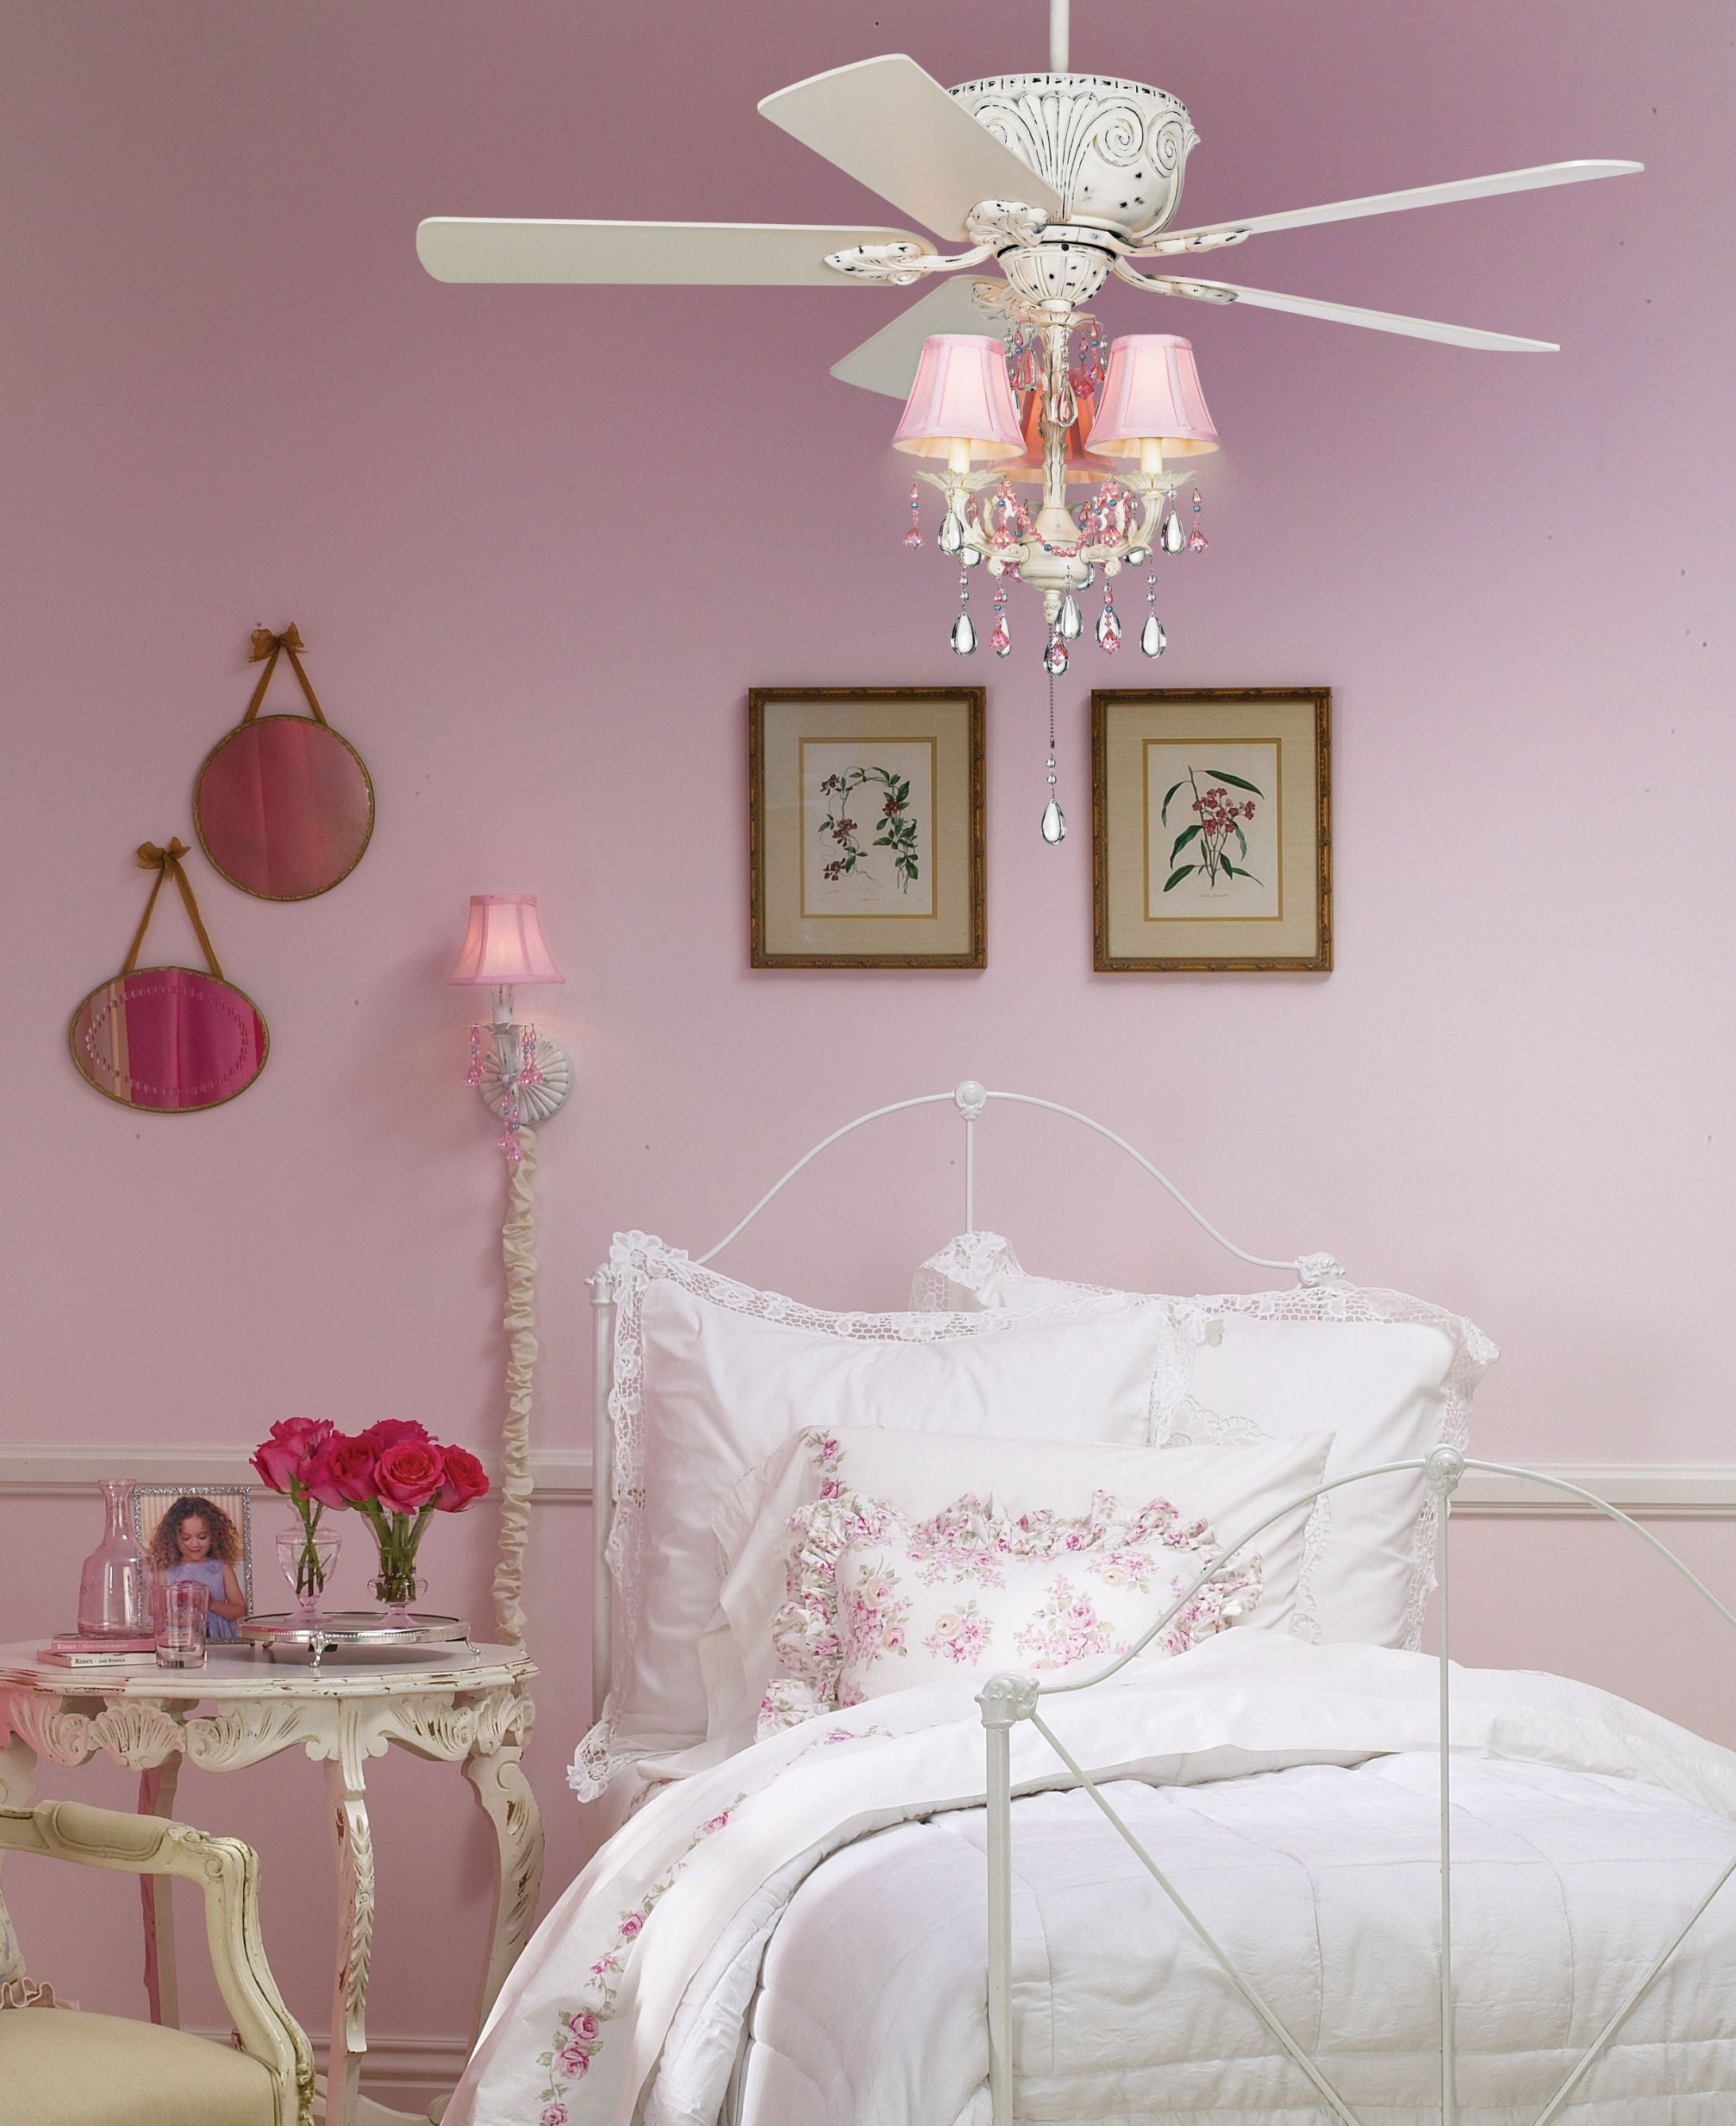 Chandelier For Girls Bedroom 2017 Including Inspiring Room Intended For Kids Bedroom Chandeliers (Image 10 of 25)